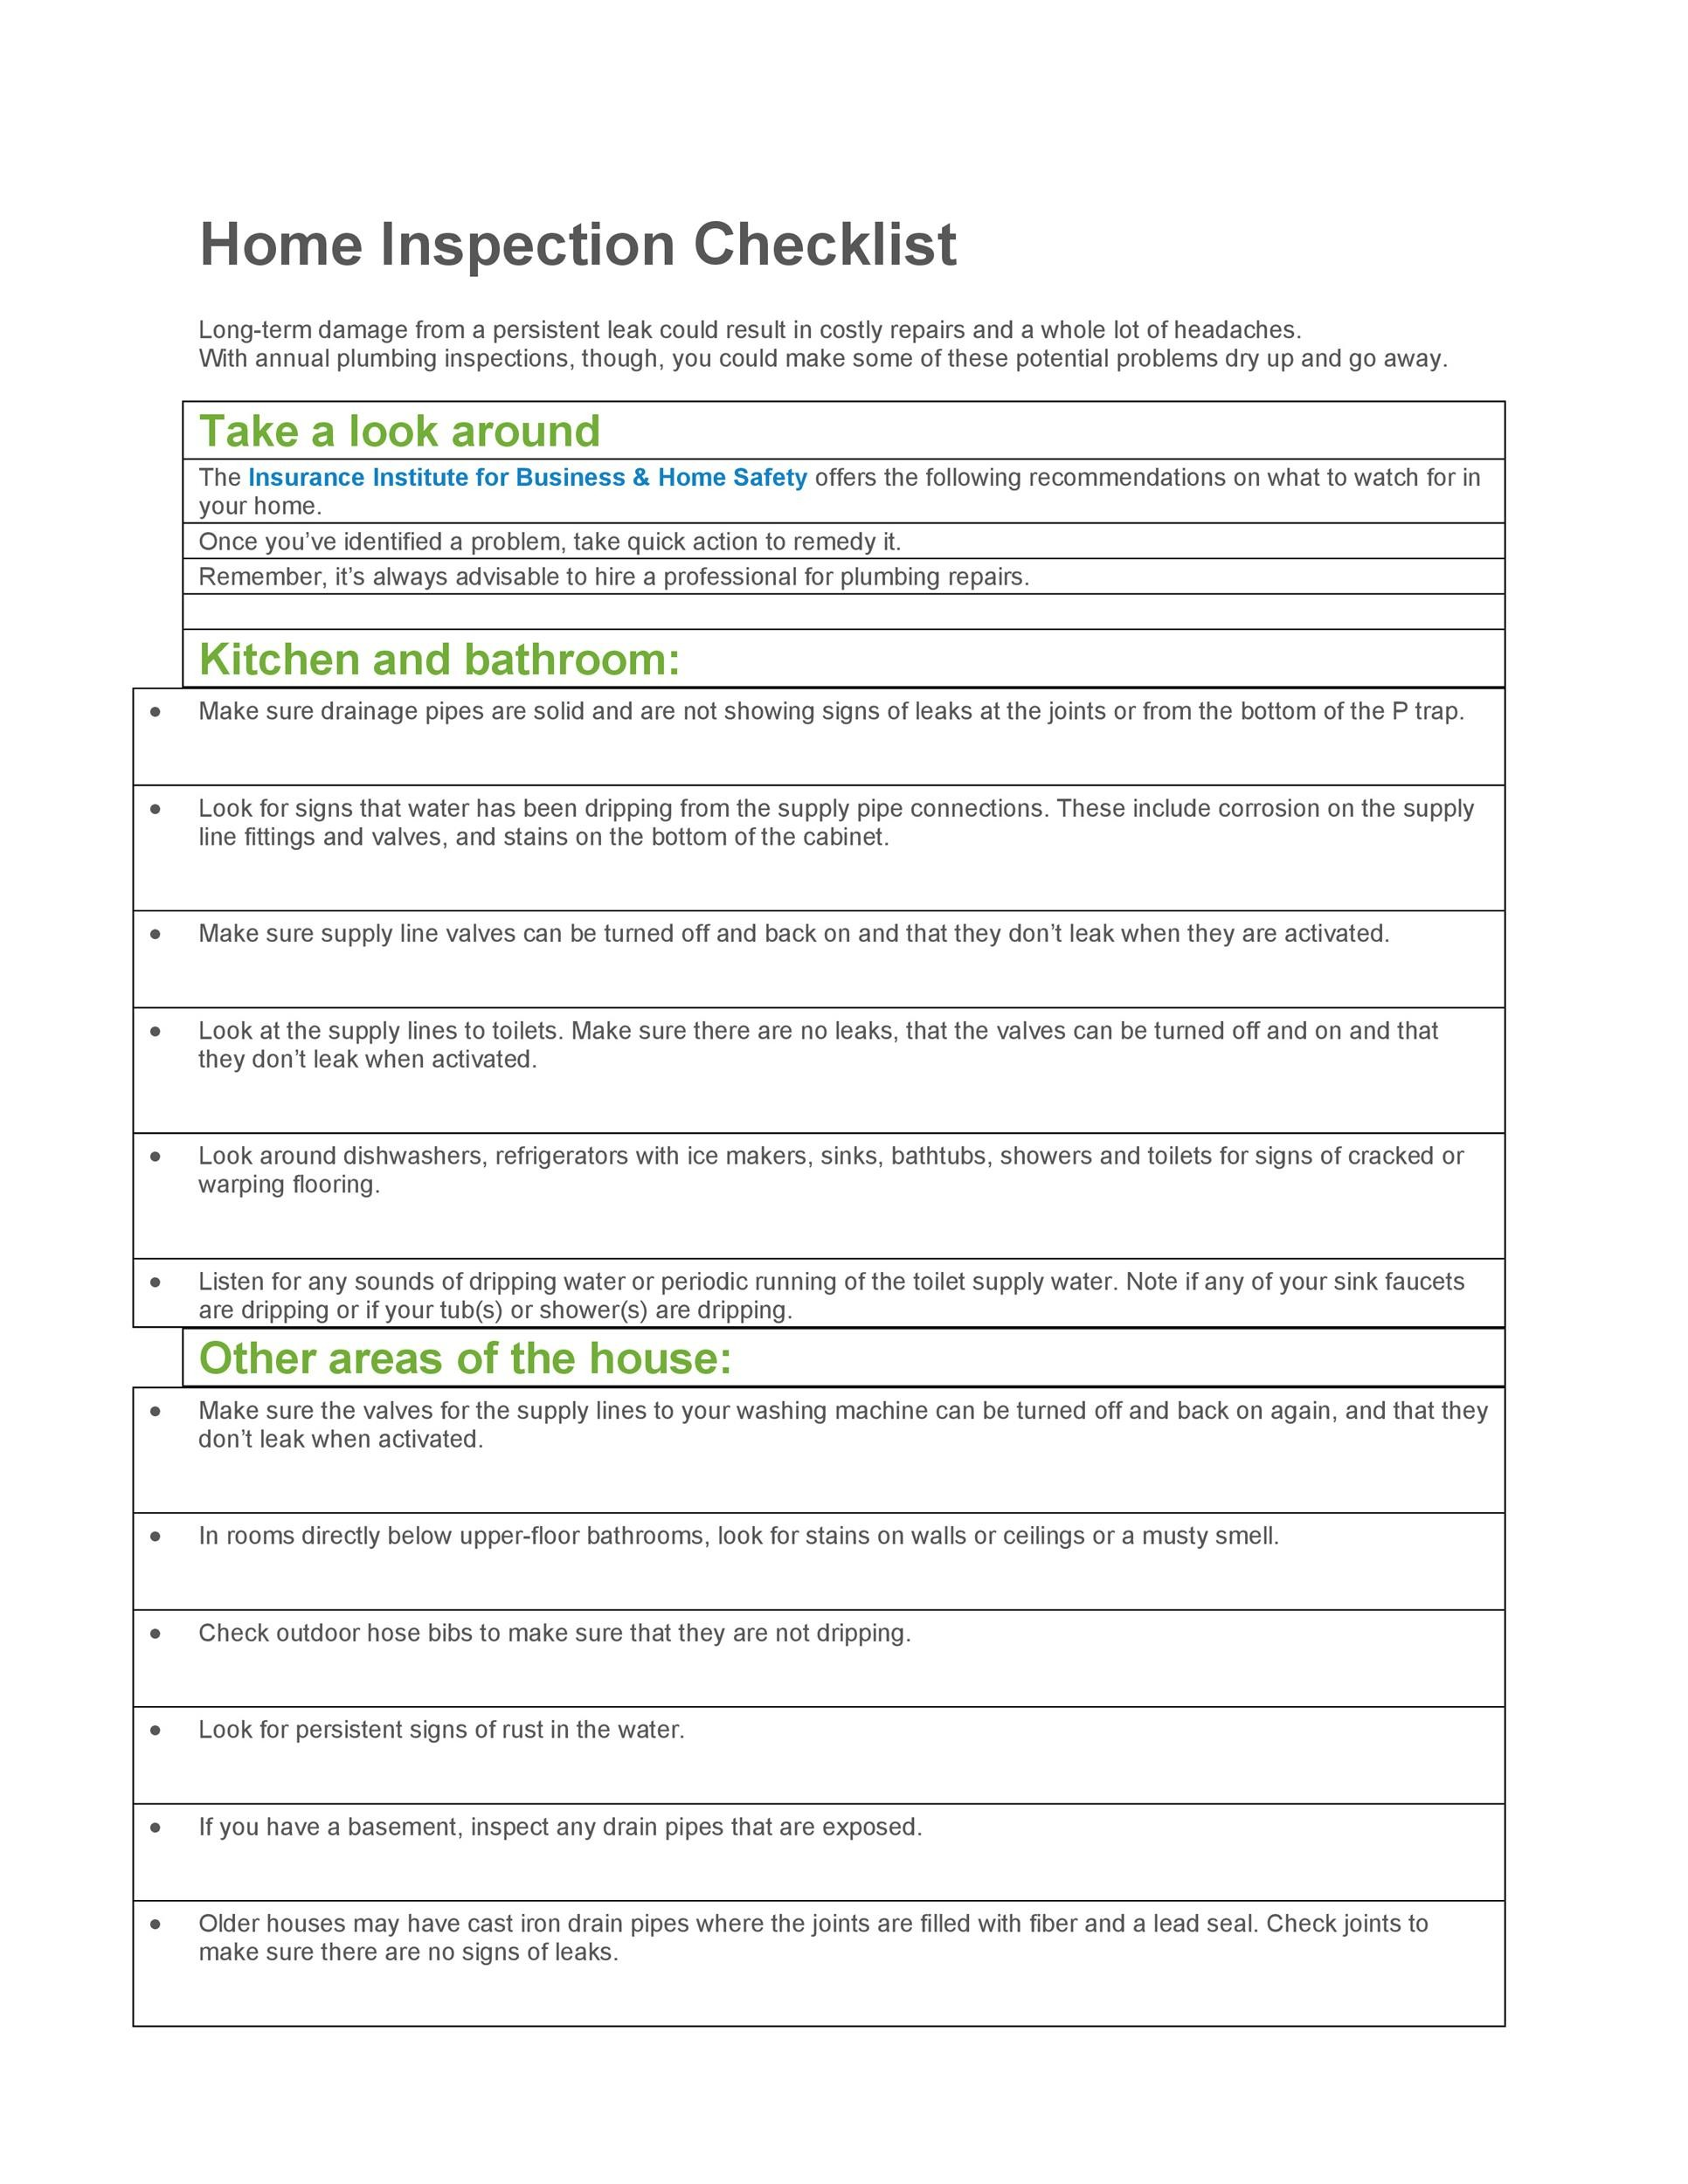 20+ Printable Home Inspection Checklists (Word, PDF) - Template Lab - sample home inspection checklist